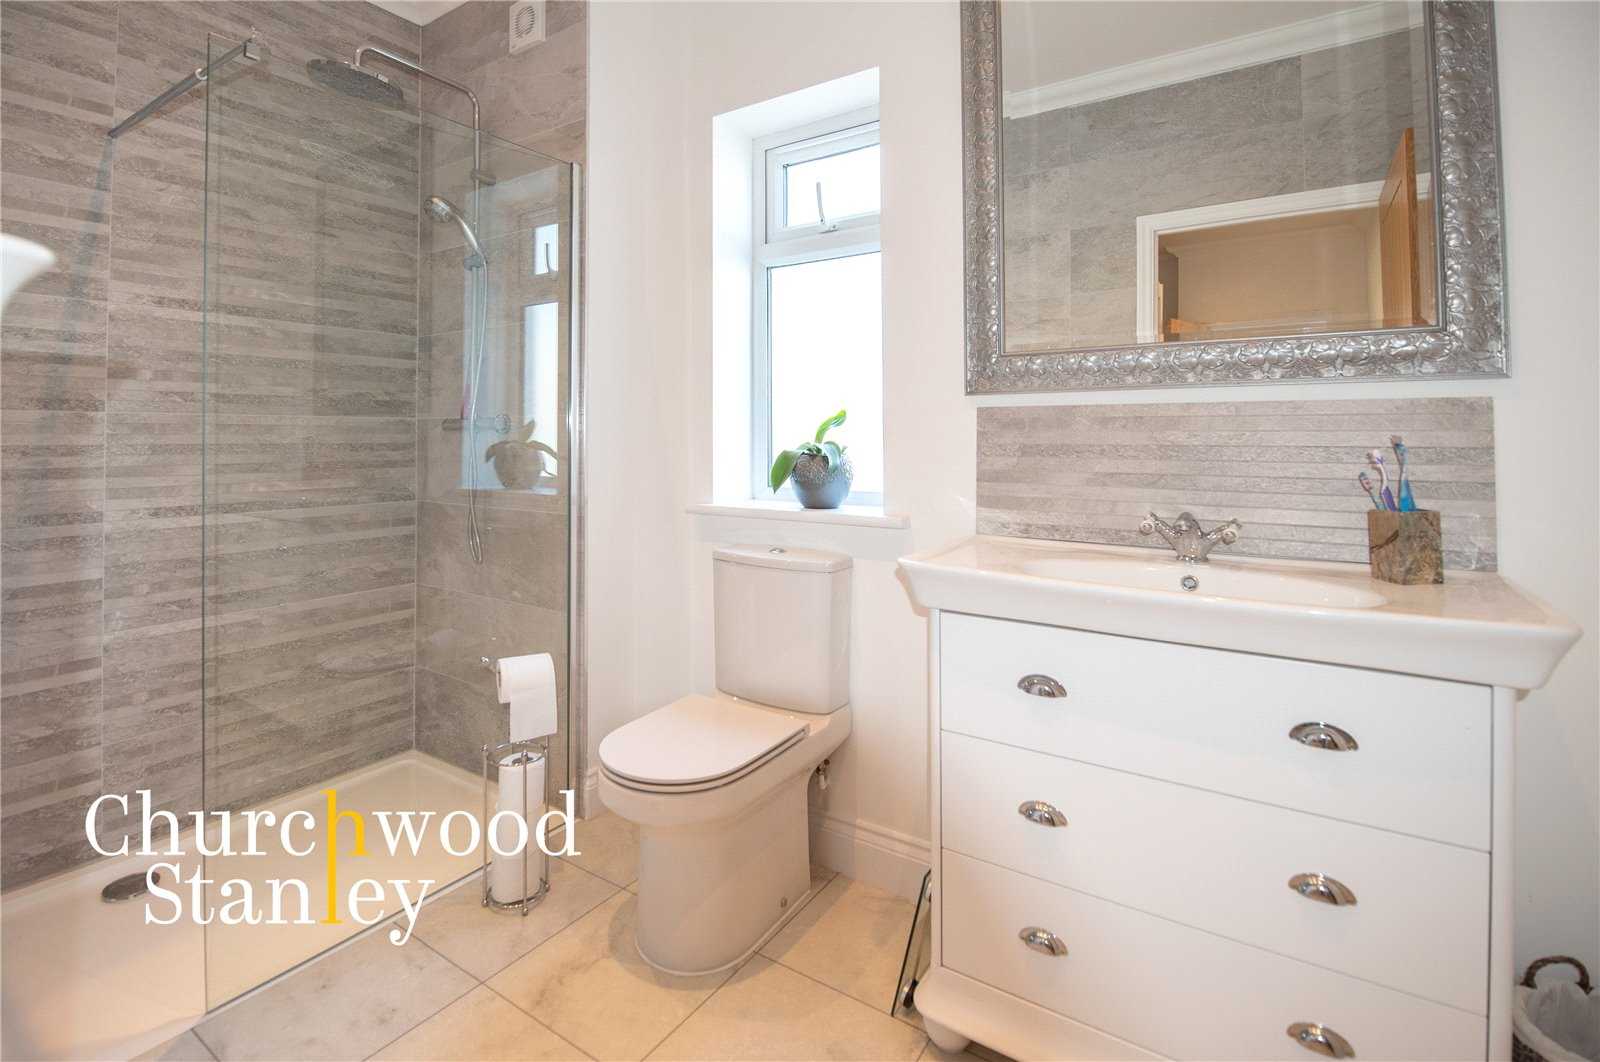 3 bed house for sale in Mill Lane, Bradfield  - Property Image 21